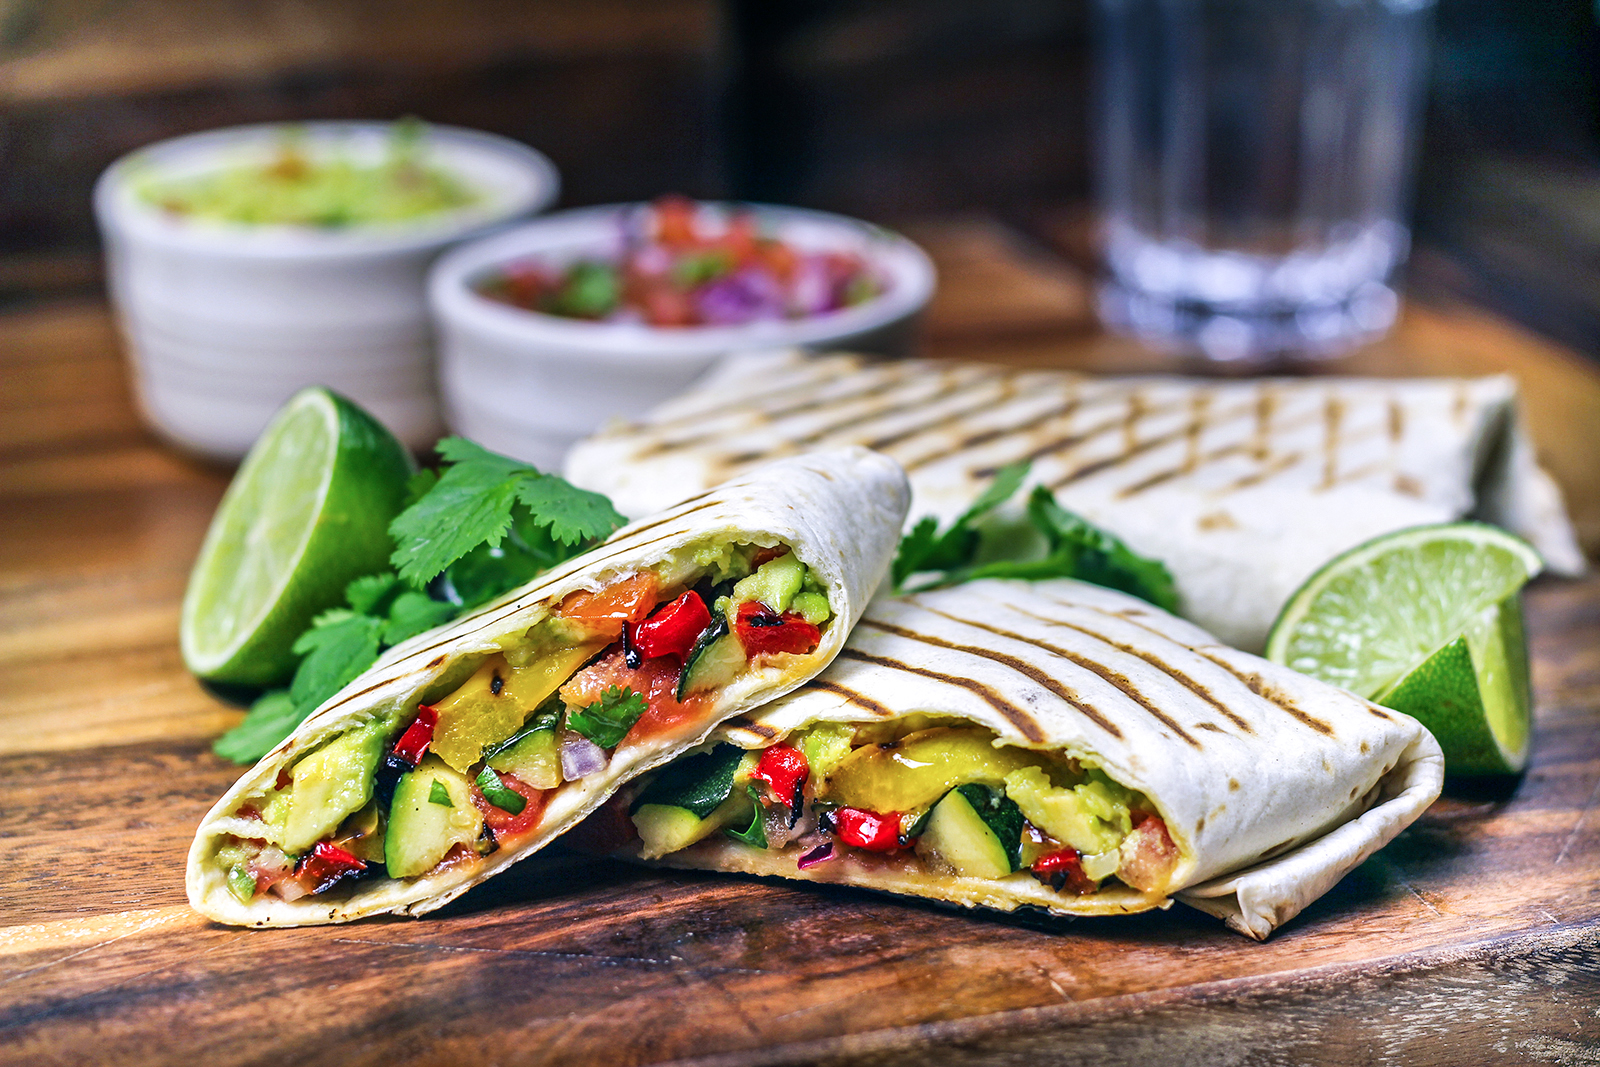 Wraps Rezepte Vegetarisch Grilled Vegetable Wraps With Salsa And Guacamole